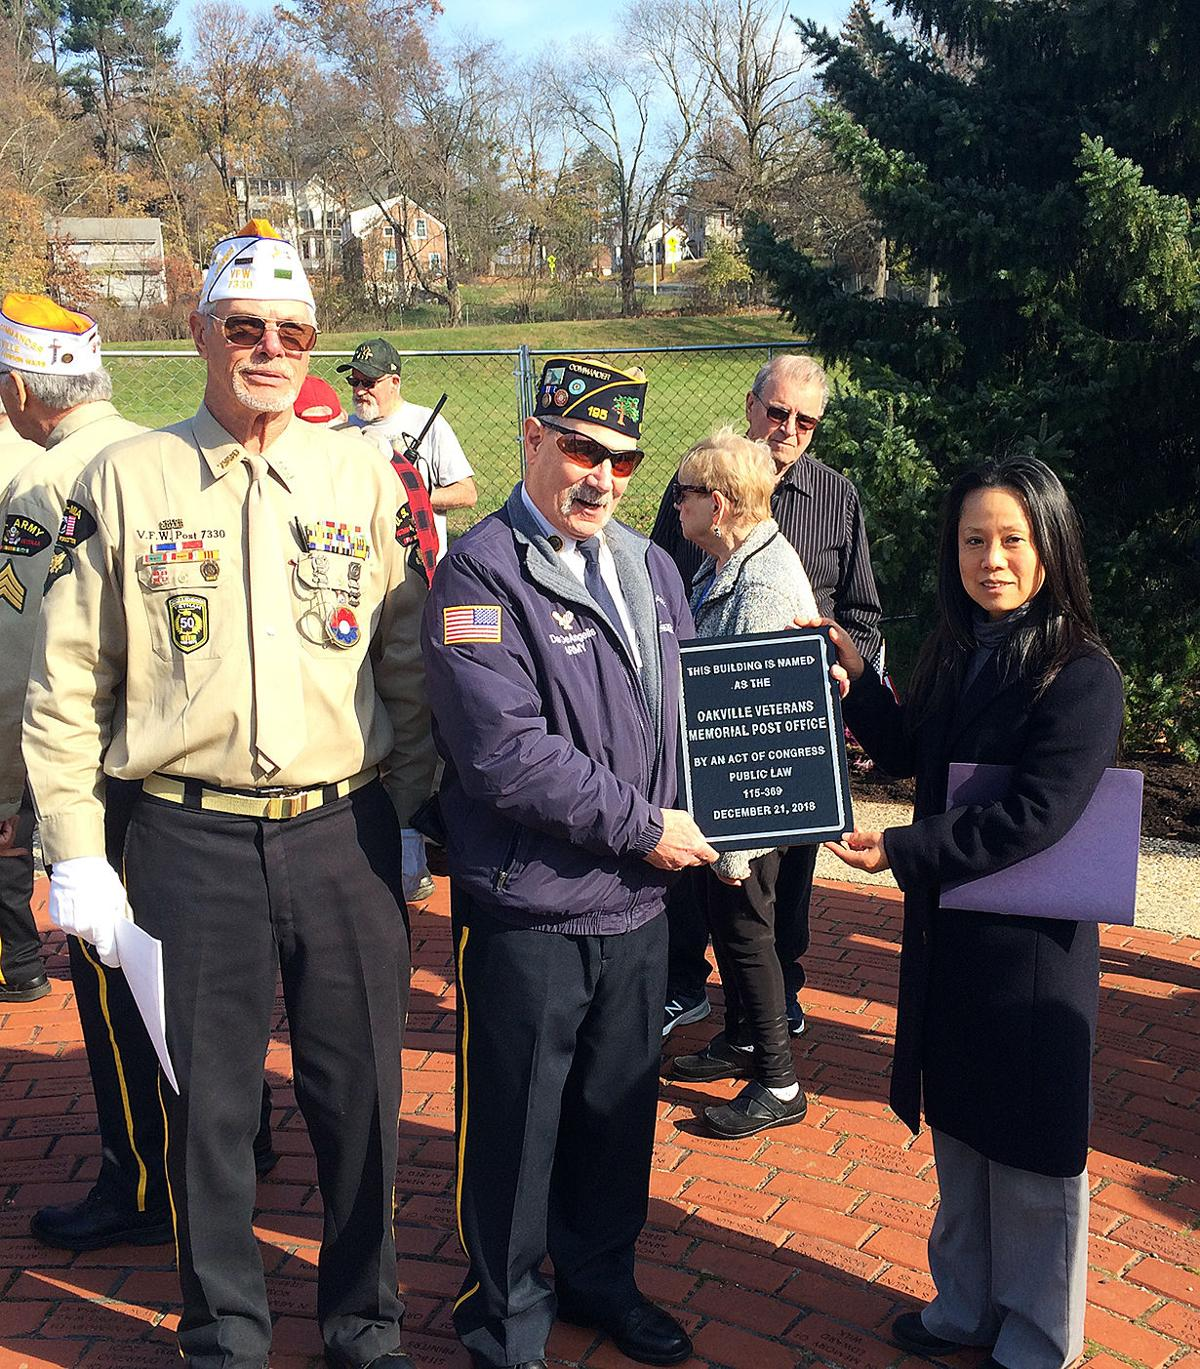 In Honor of Those Who Served: Watertown and Oakville Observe Veterans Day